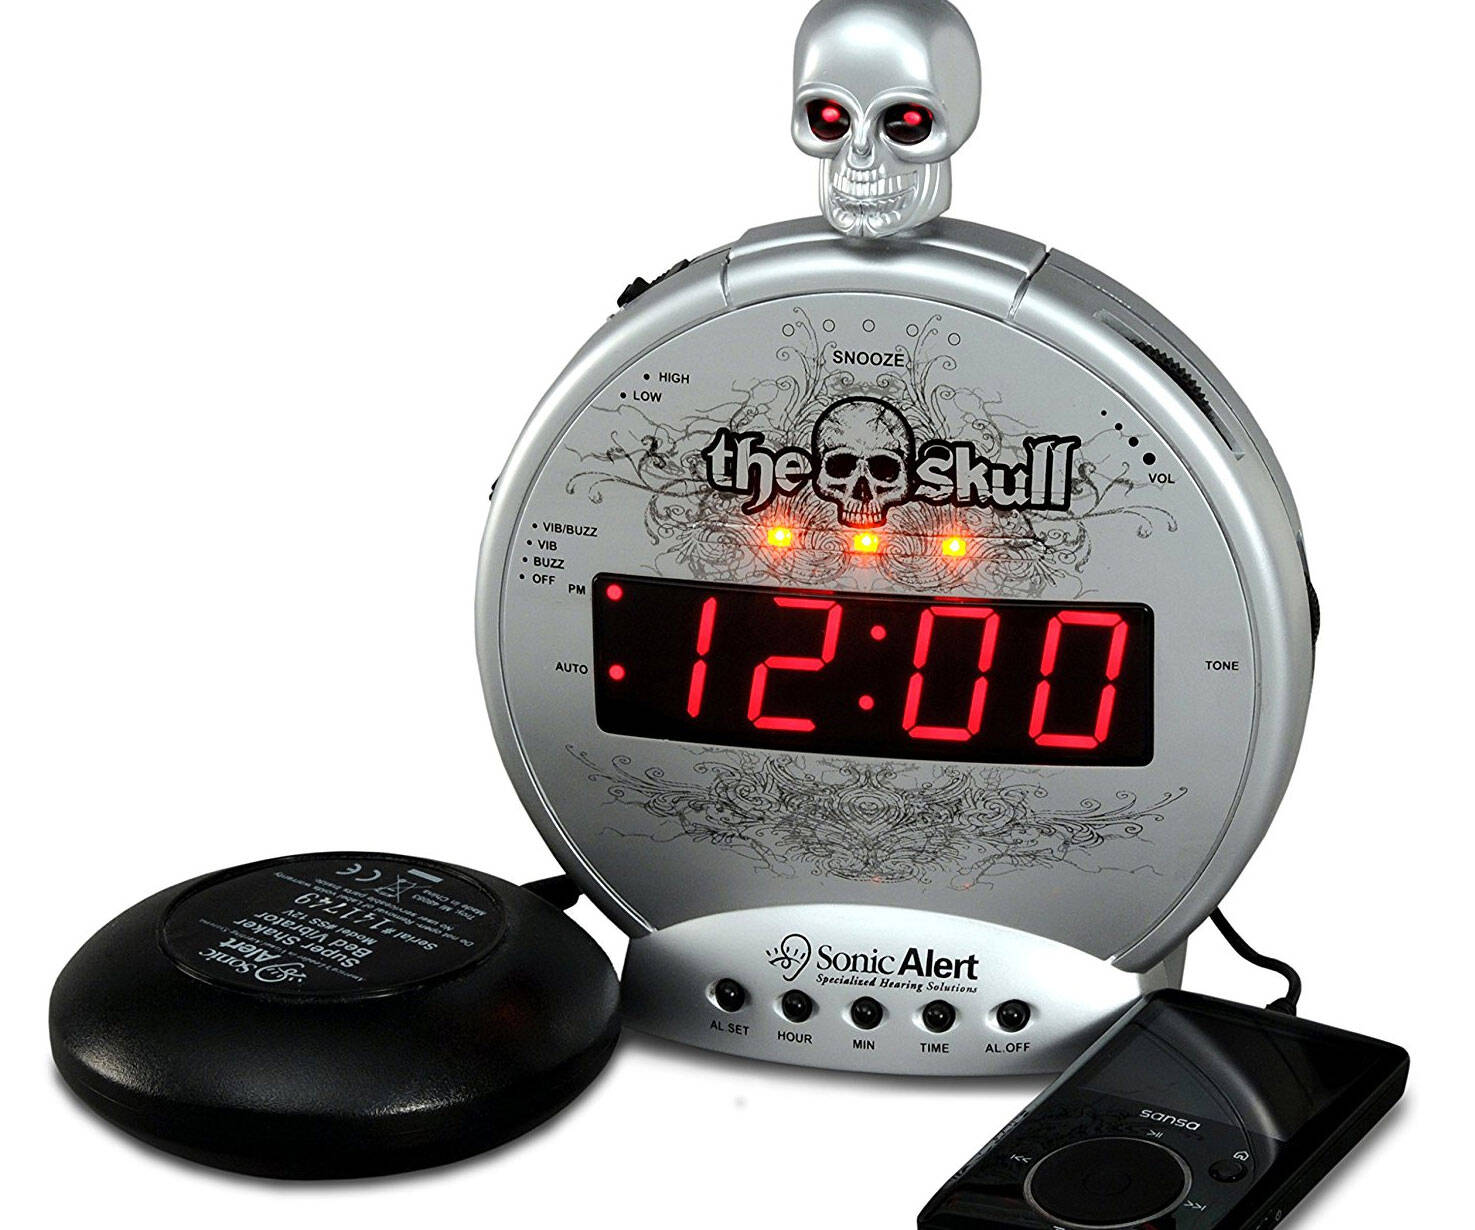 Ultra Loud Alarm Clock And Bed Shaker - http://coolthings.us